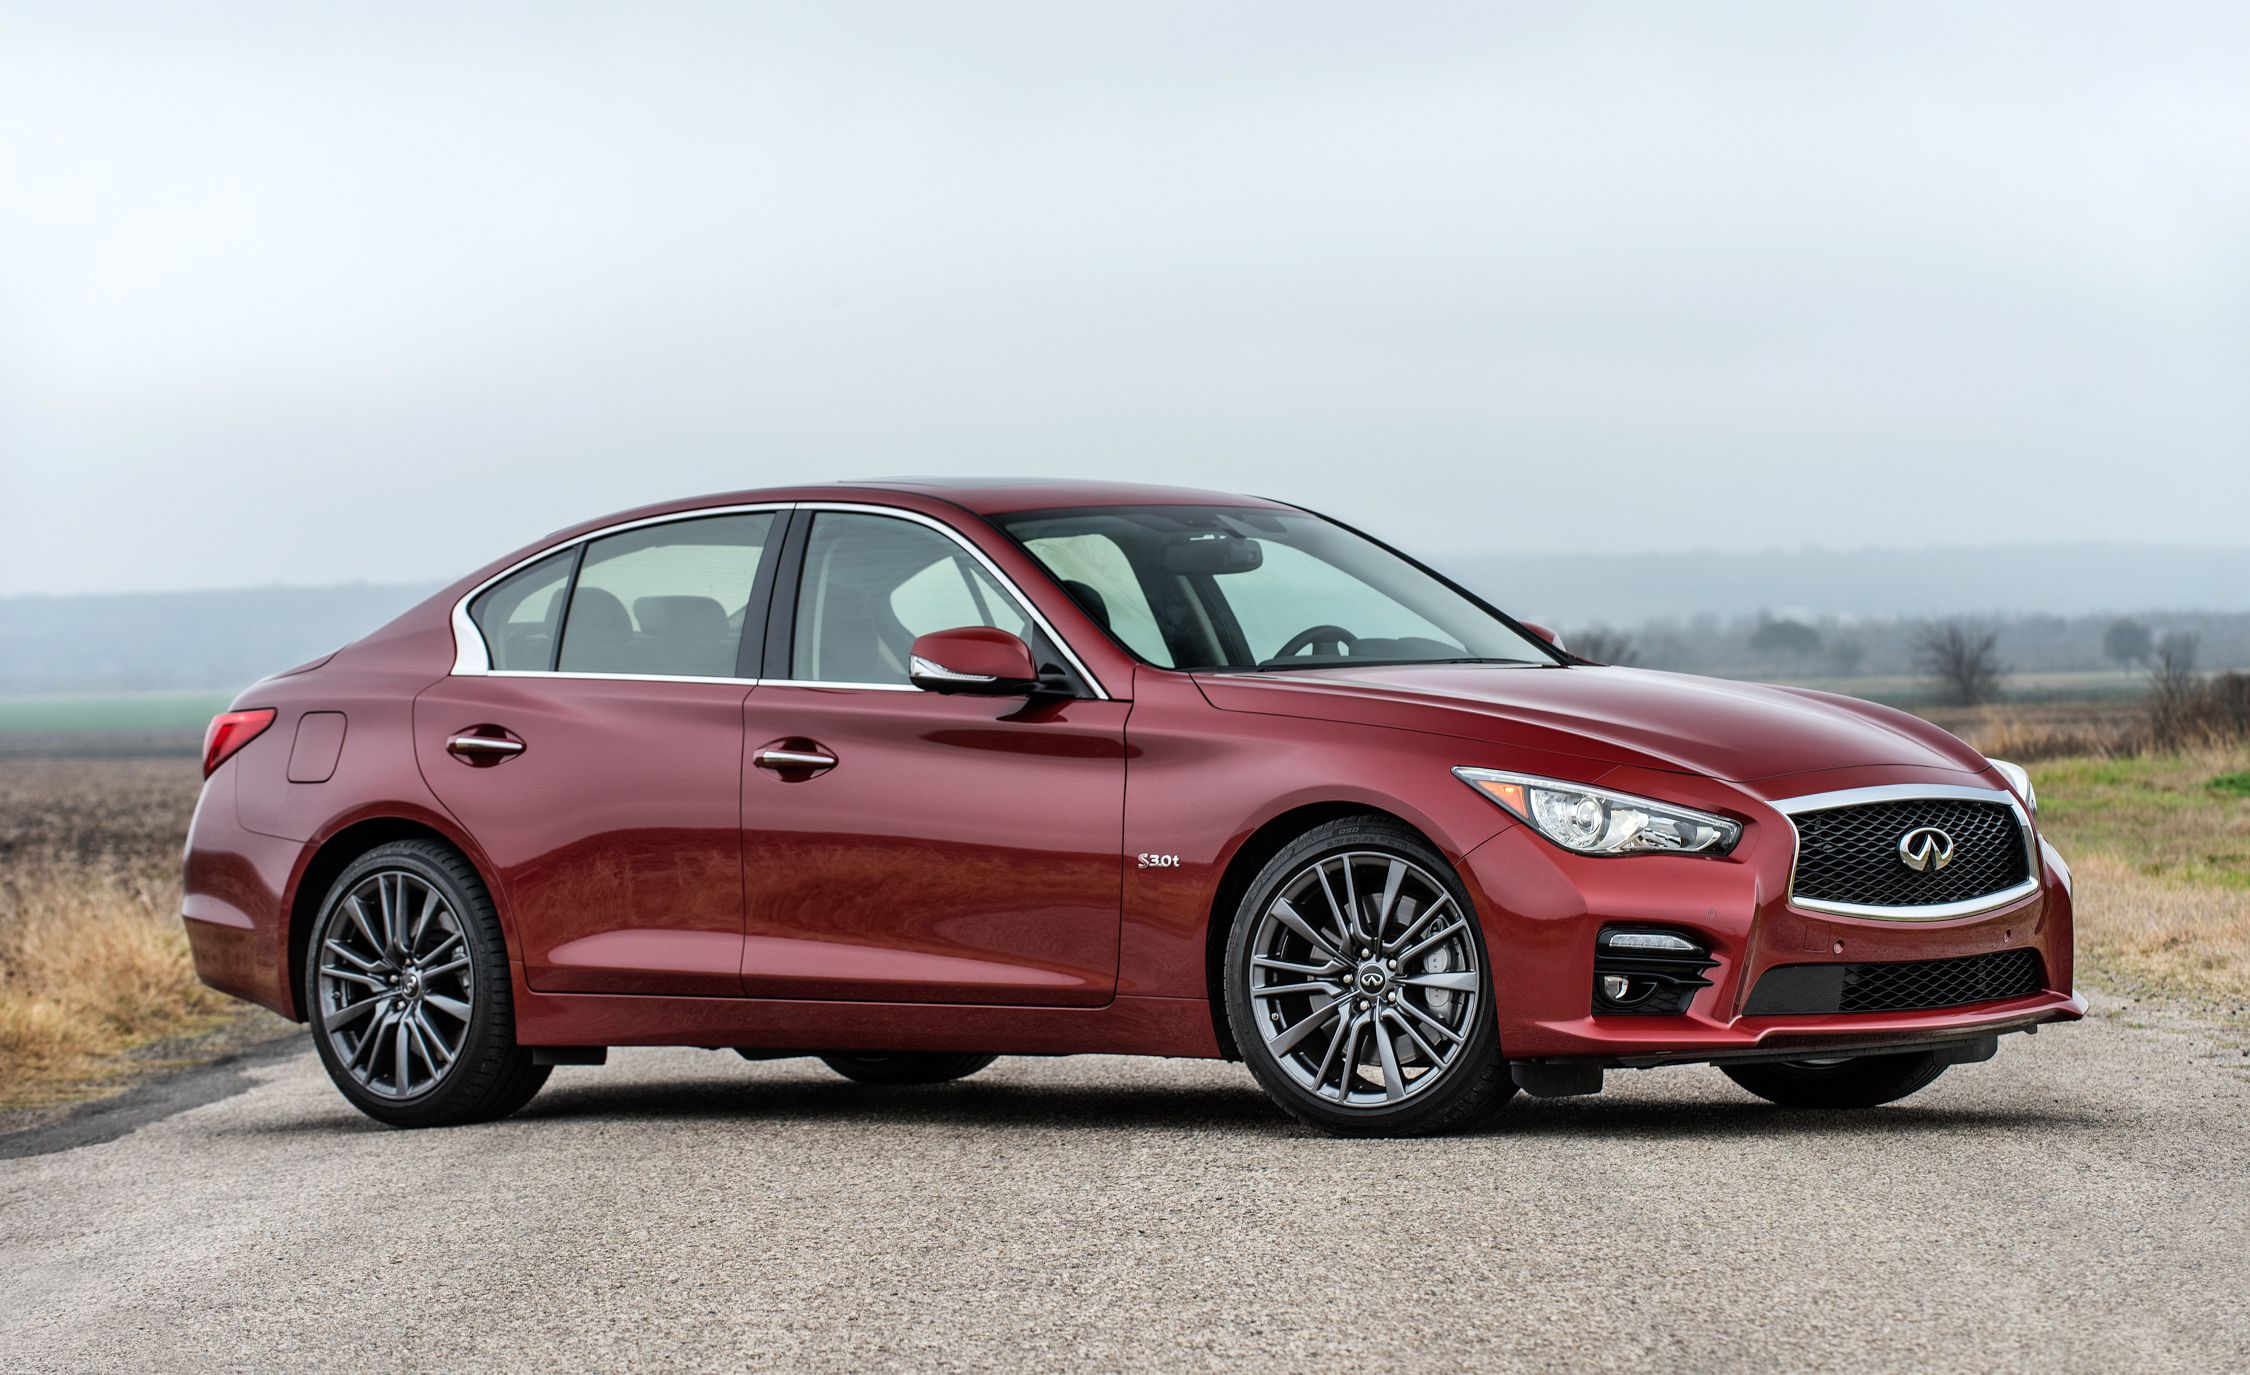 Infiniti Q50 Red Sport 400 Reviews | Infiniti Q50 Red Sport 400 Price,  Photos, And Specs | Car And Driver